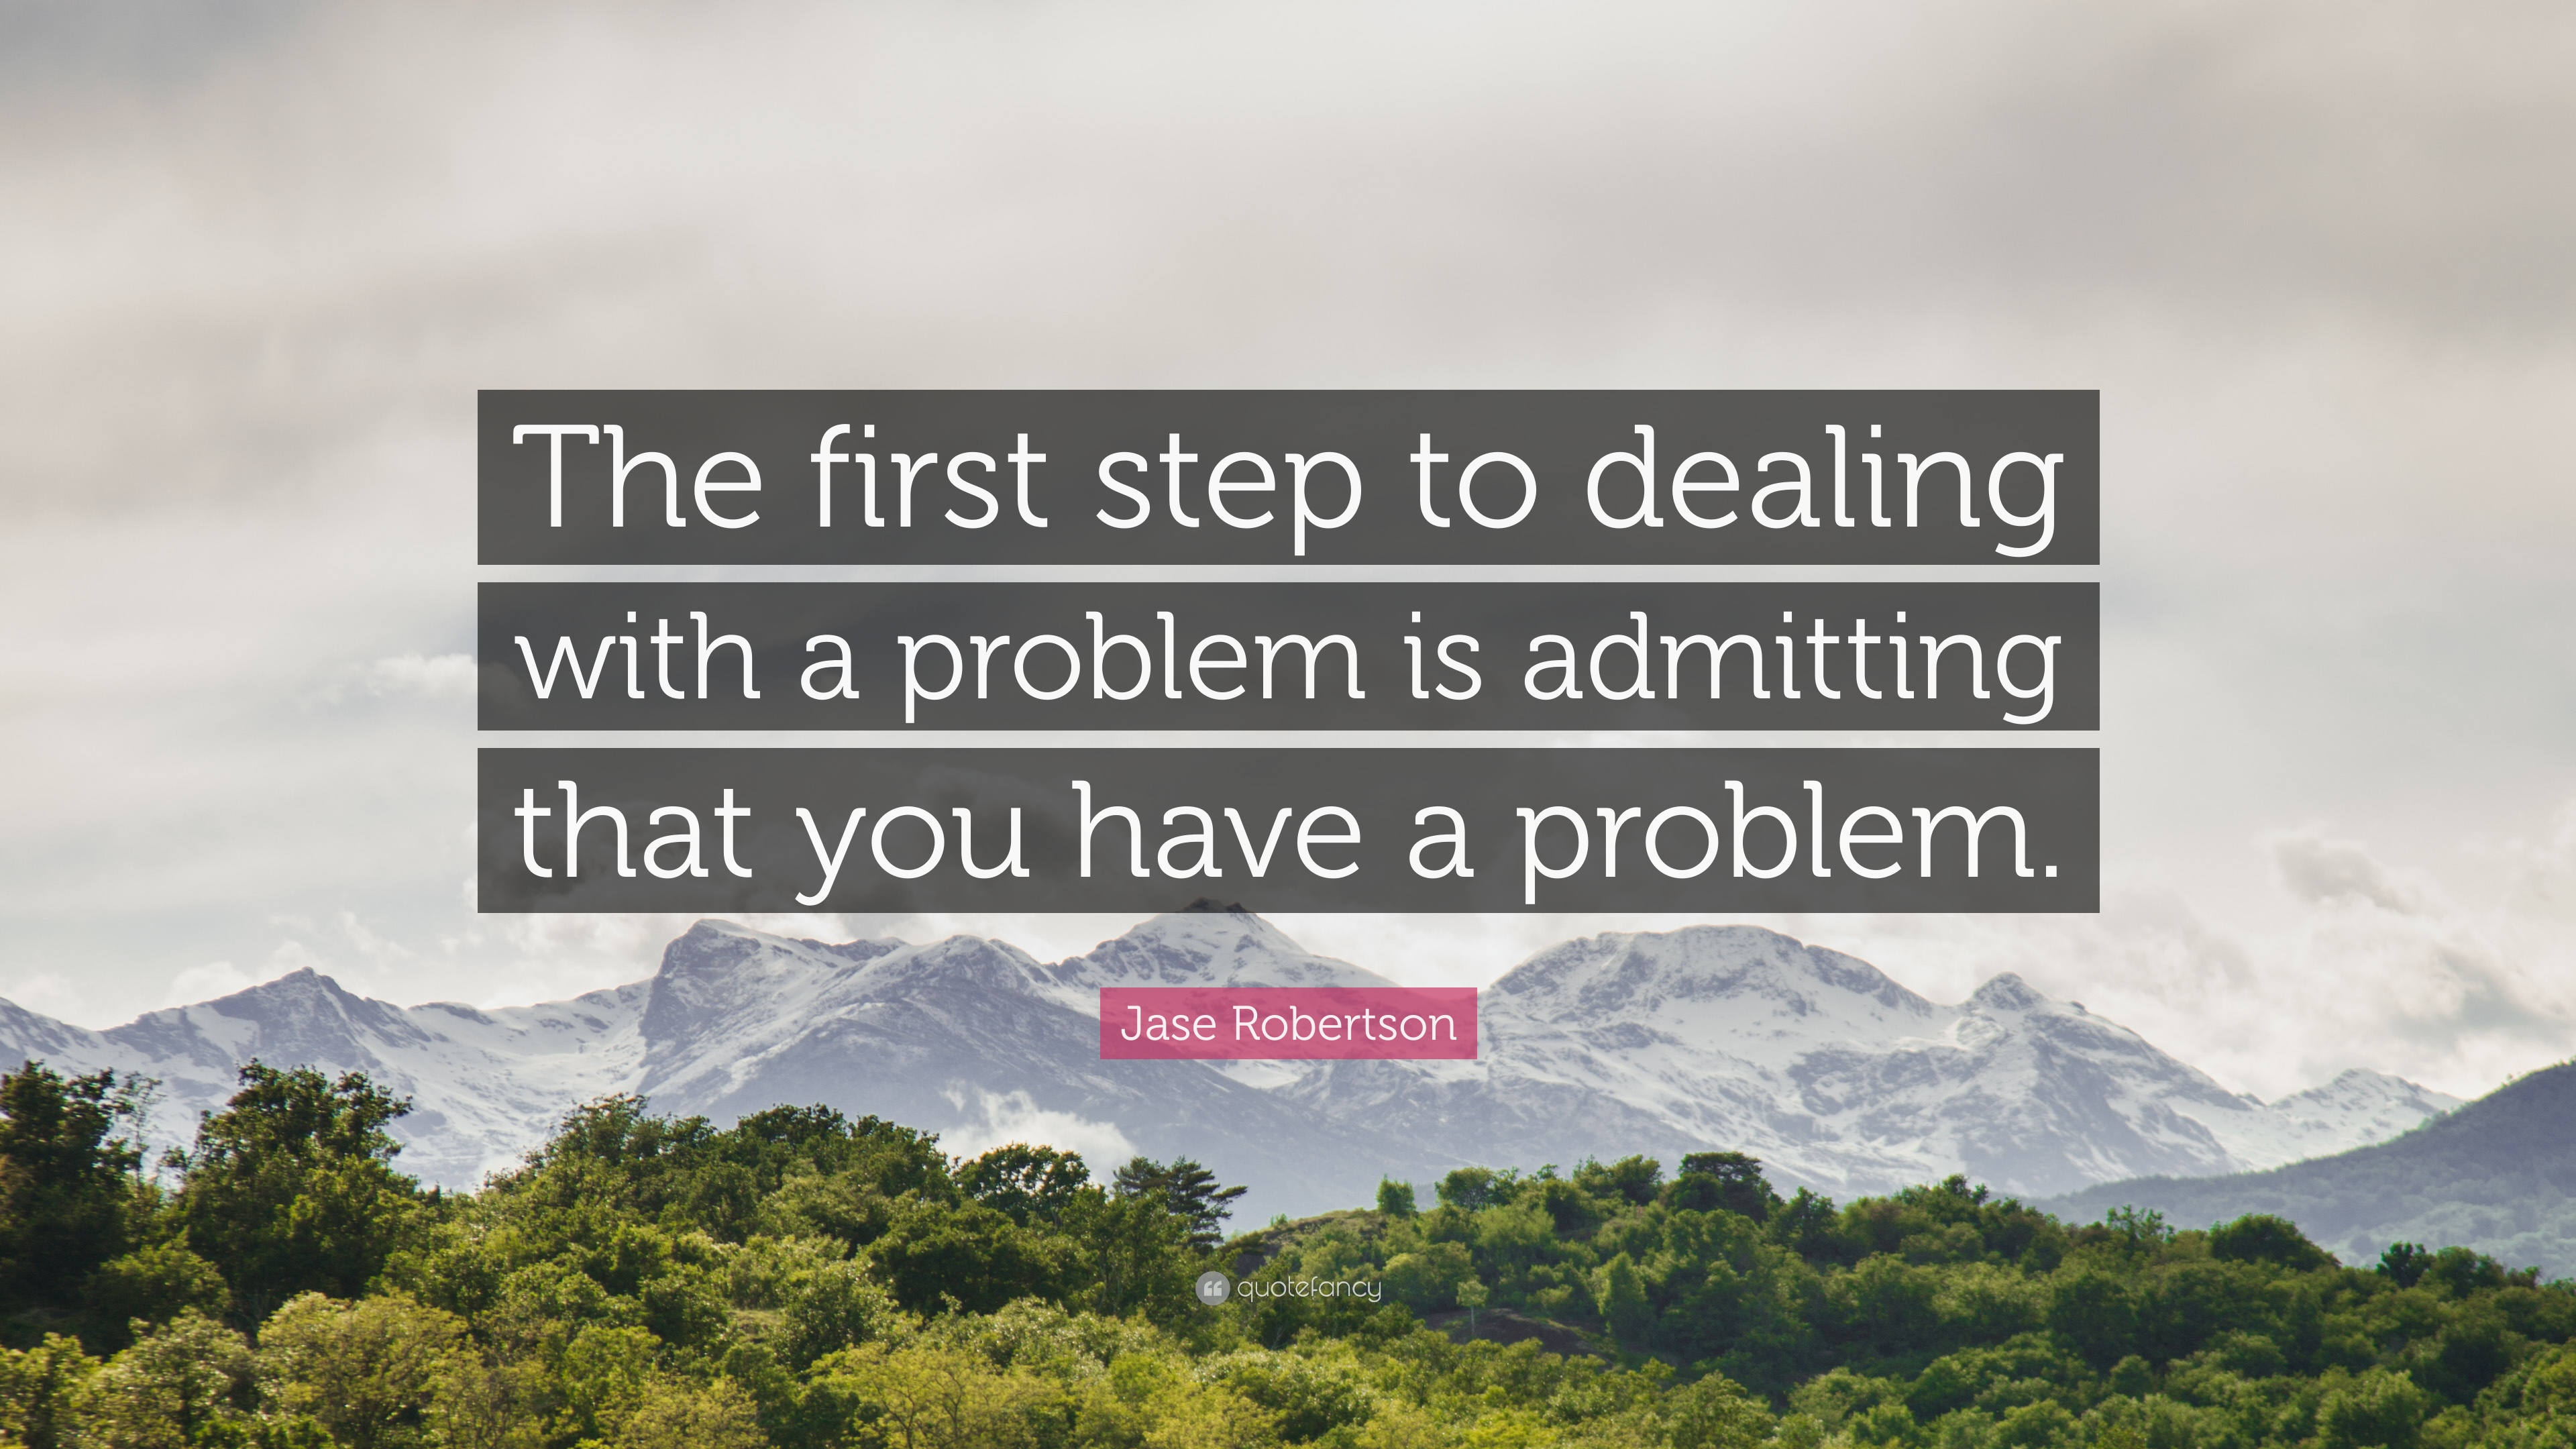 jase robertson quote the first step to dealing with a problem is